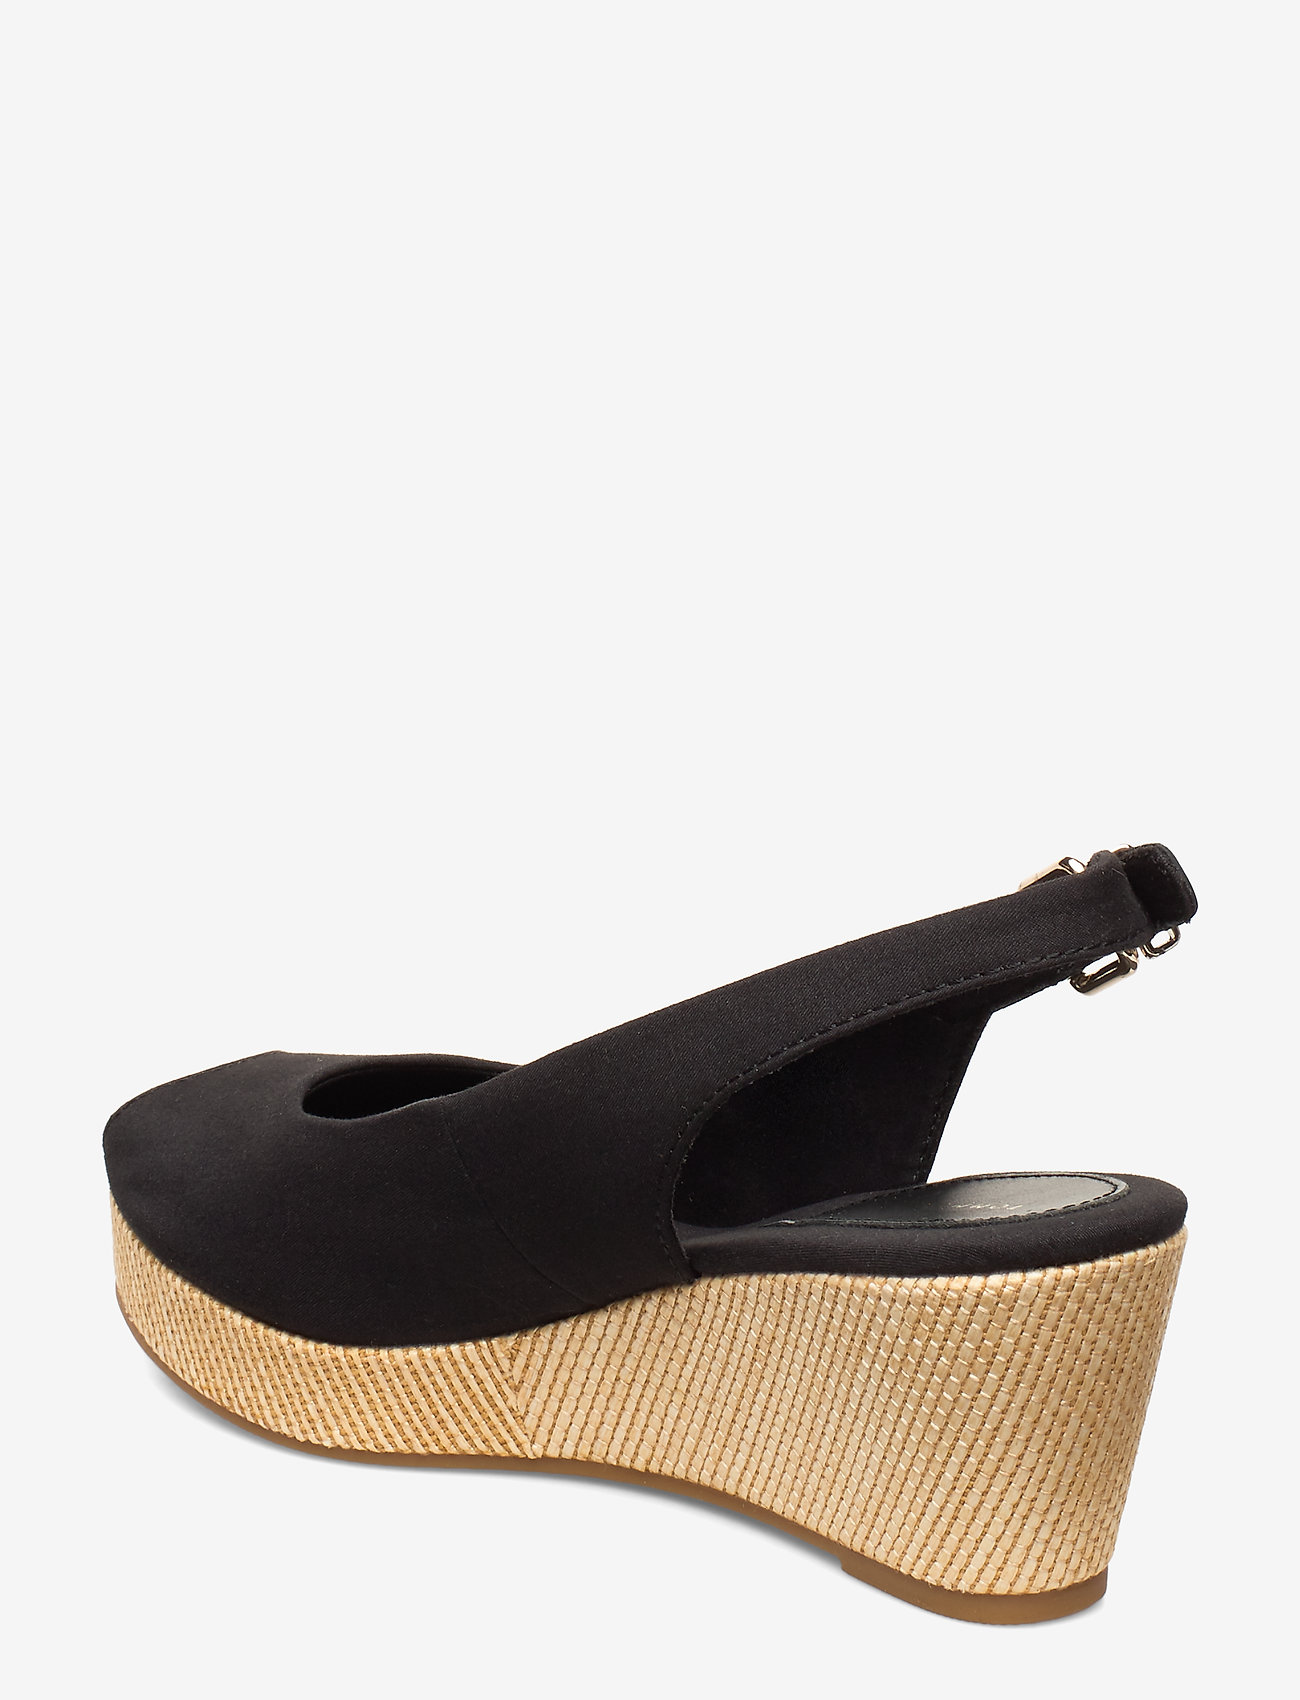 Iconic Elba Sling Back Wedge (Black) - Tommy Hilfiger